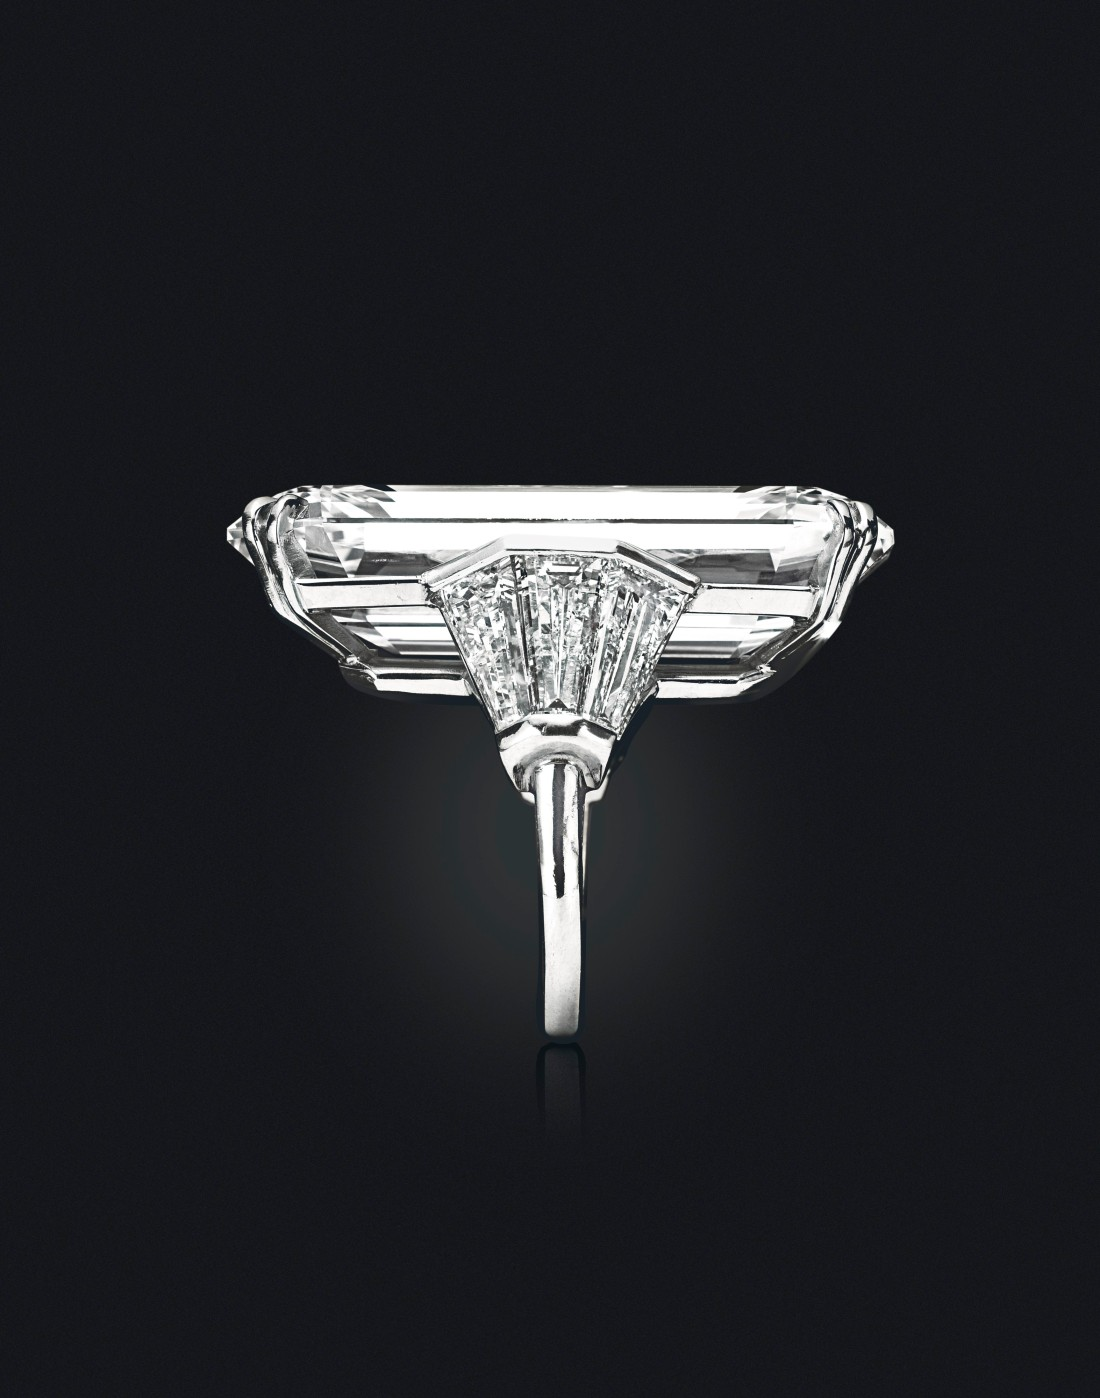 The Mirror of Paradise 52.58-carat Golconda diamond, shot from the side on a black background and angled to display its ring setting.